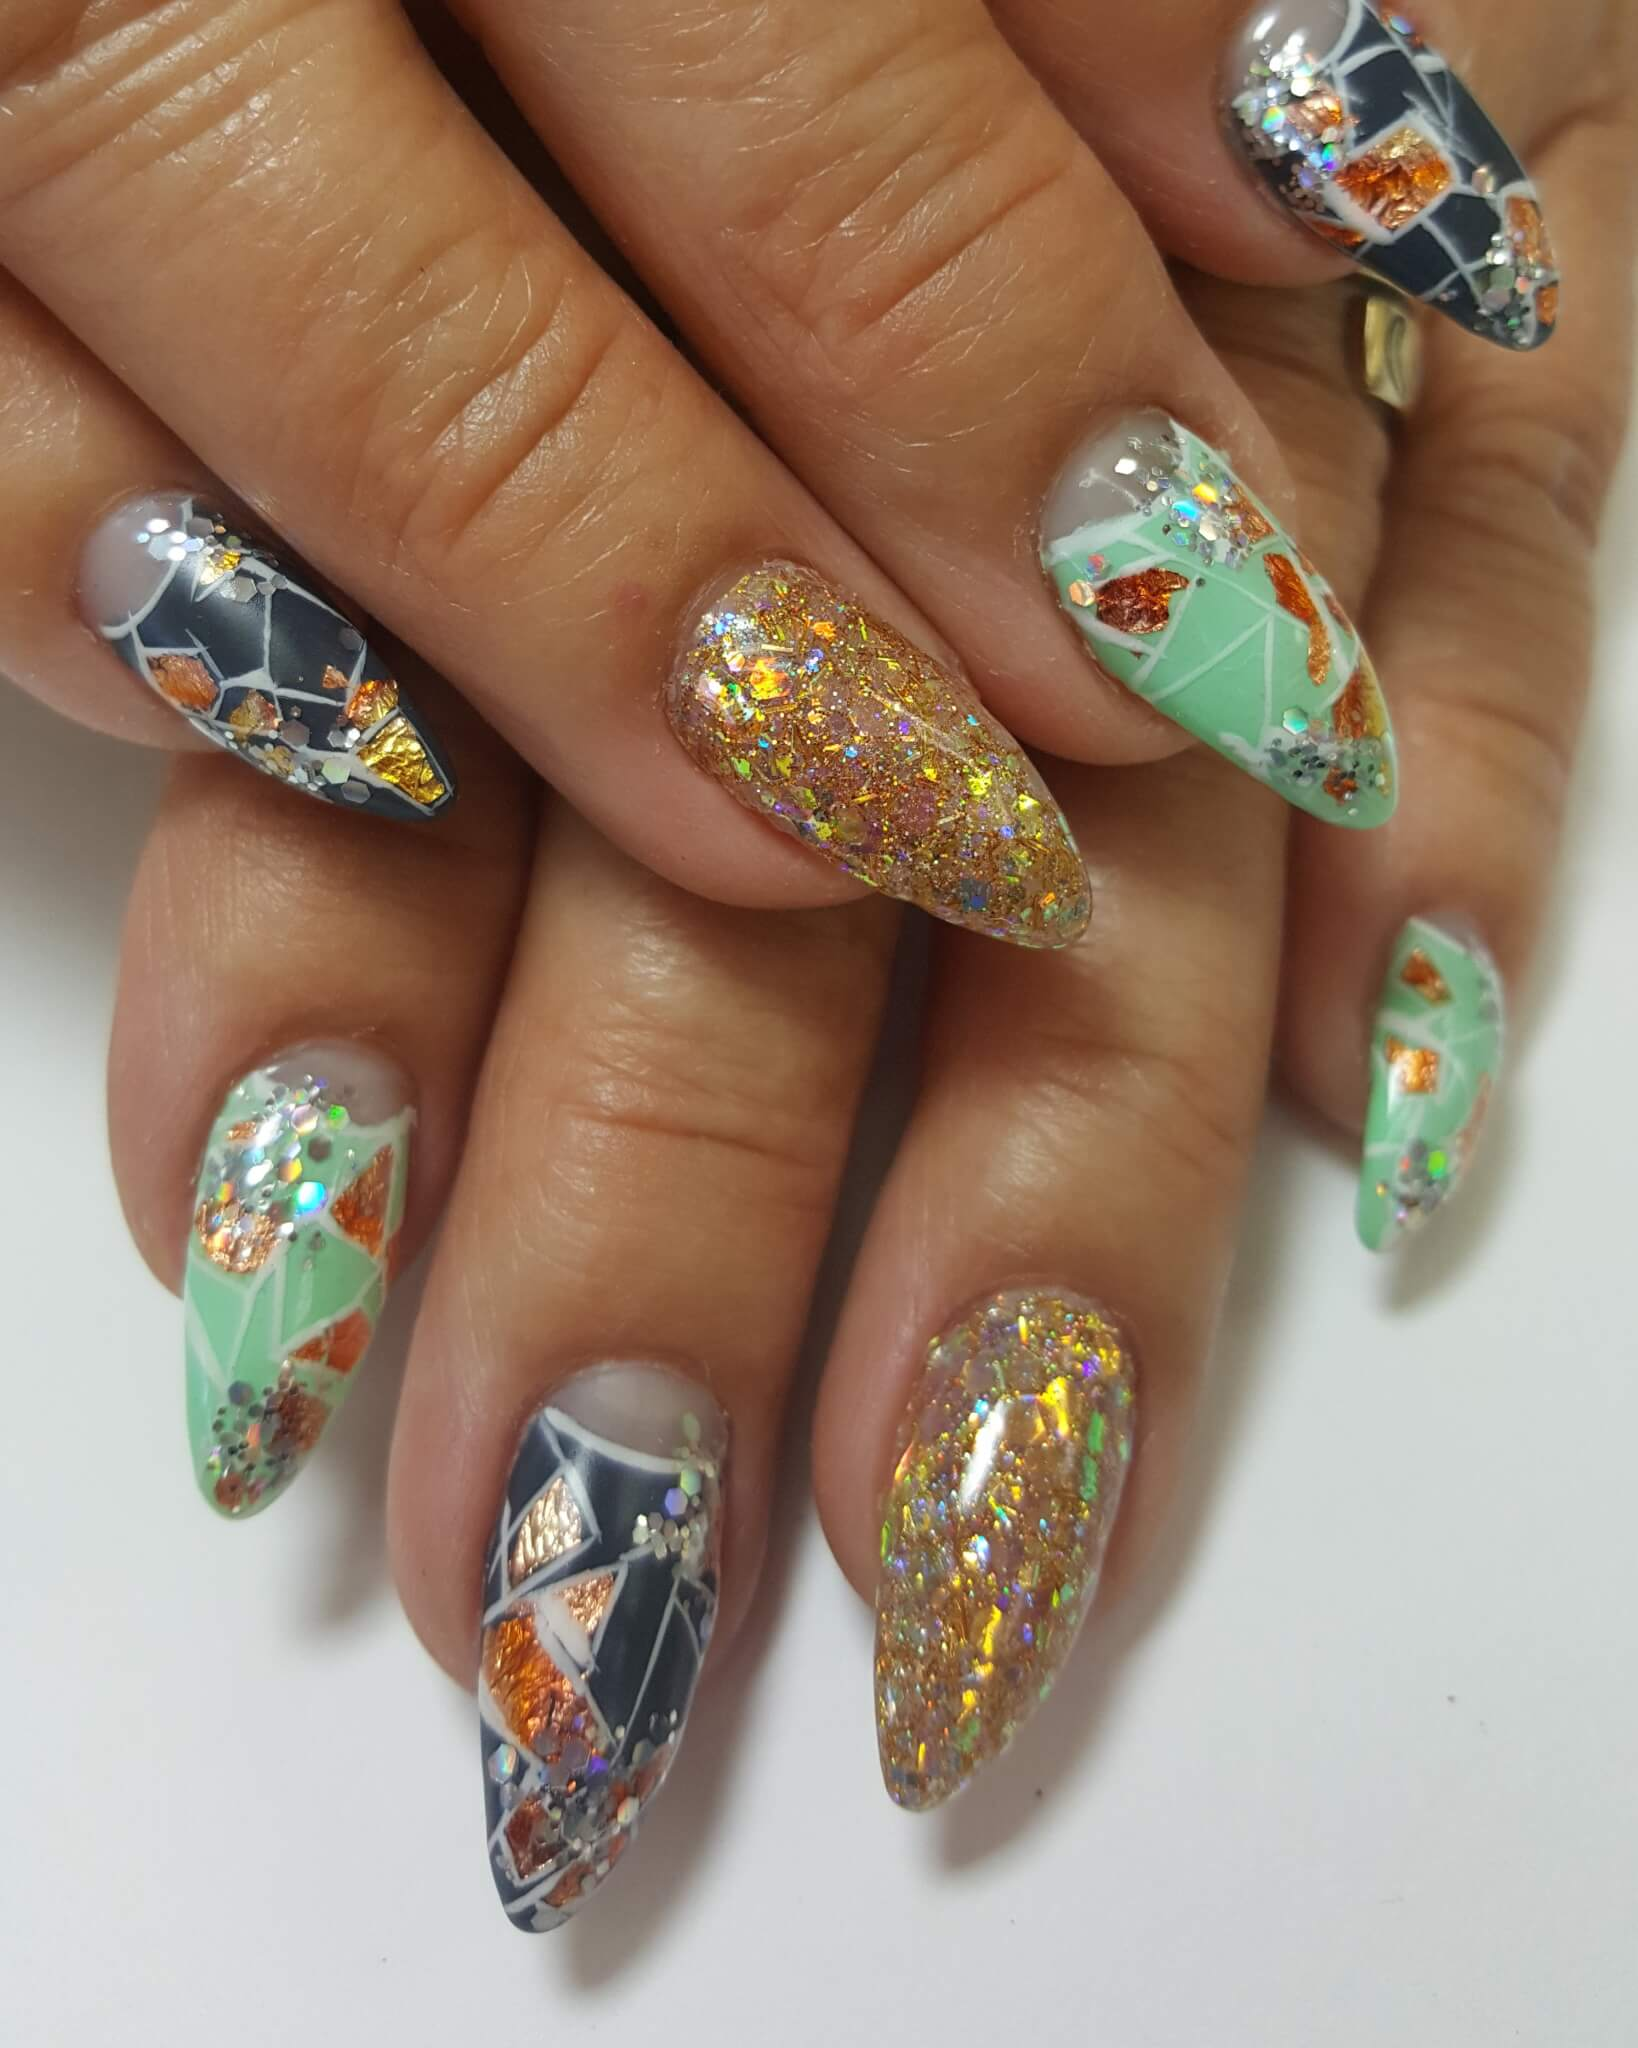 intricate gold, green and black nails with flaky patterns.